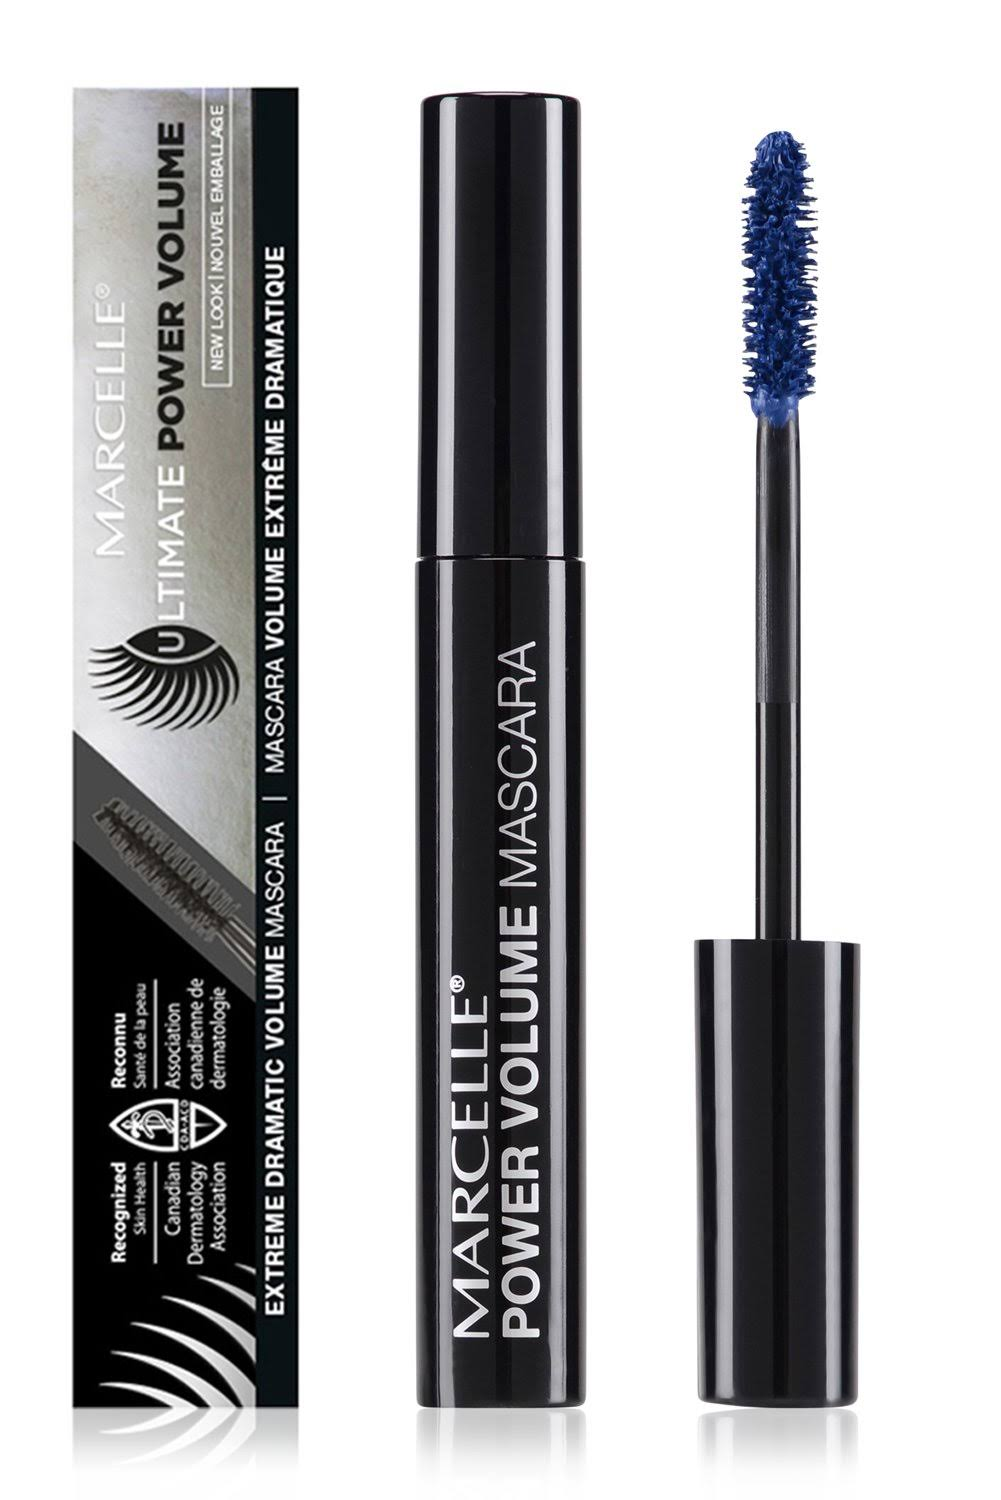 Marcelle Power Volume Mascara - Navy, 0.28oz